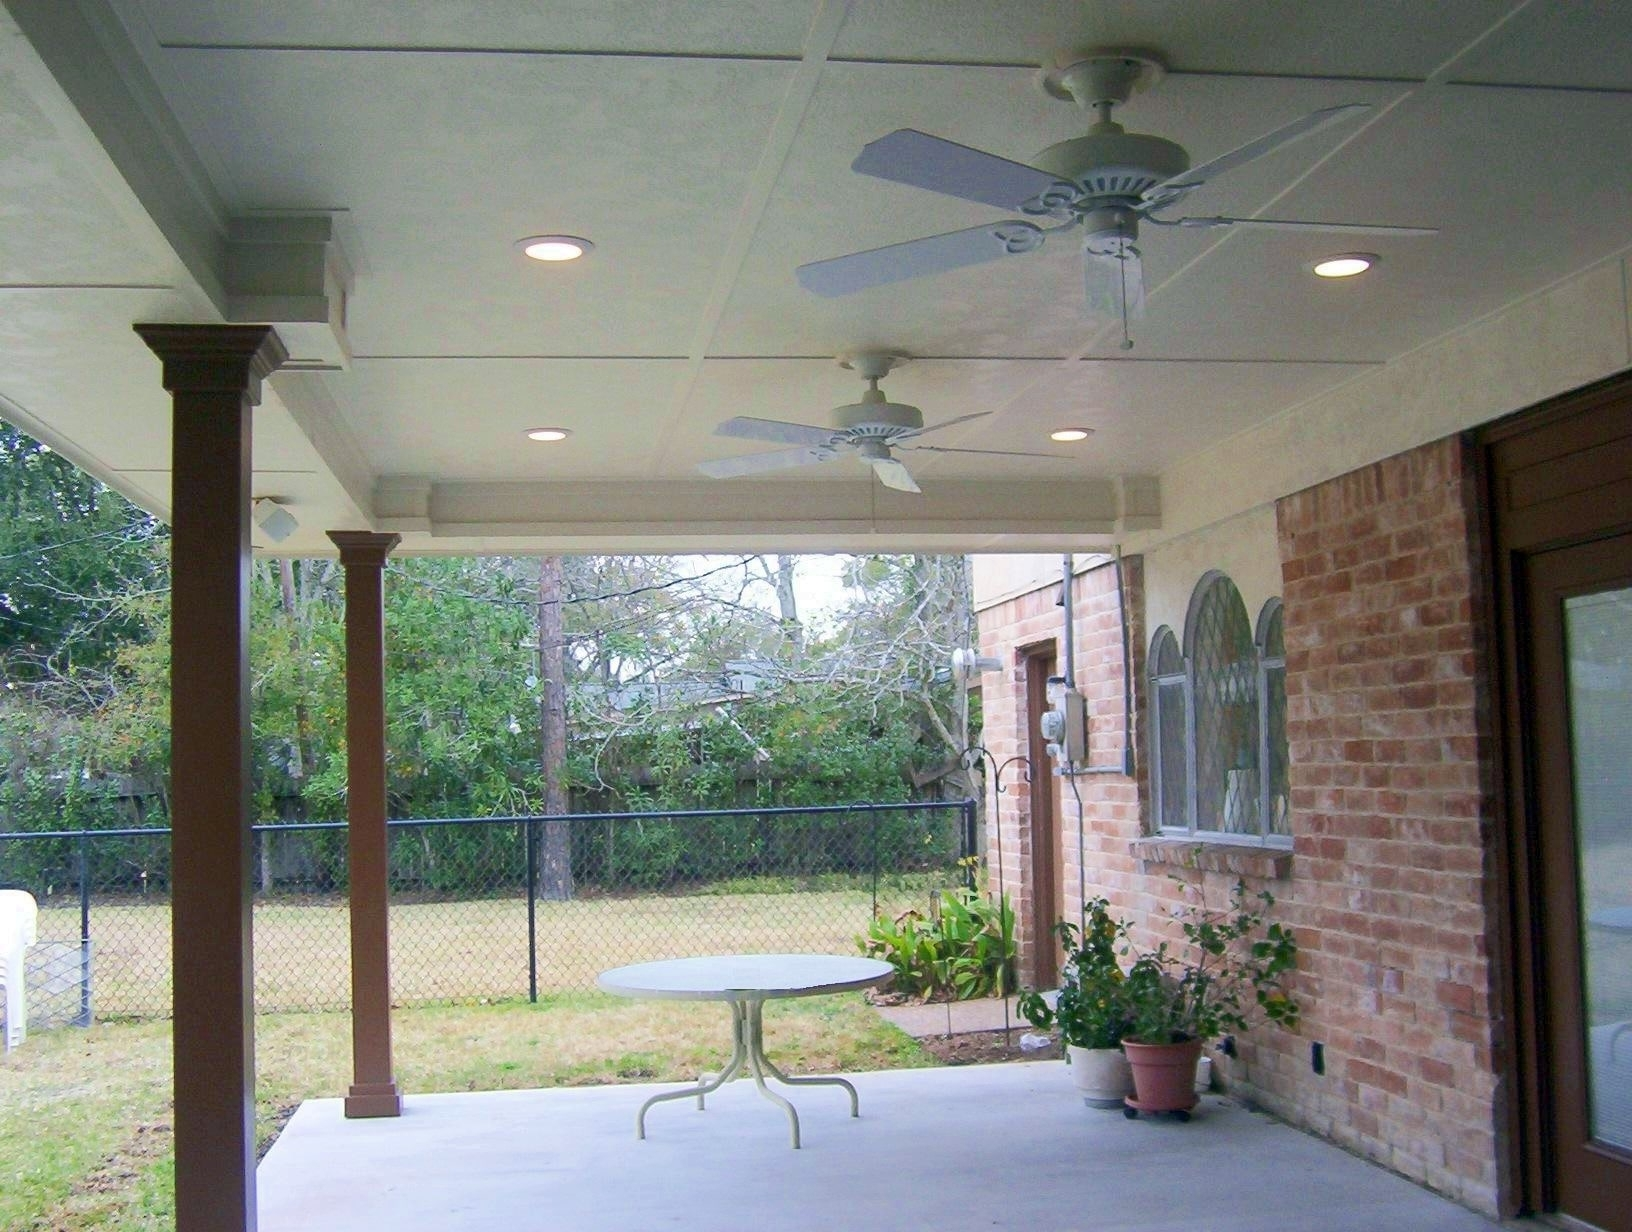 Patio Outdoor Ceiling Fan With Light — Sherizampelli Landscape Inside 2019 Outdoor Ceiling Fans For Patios (View 18 of 20)